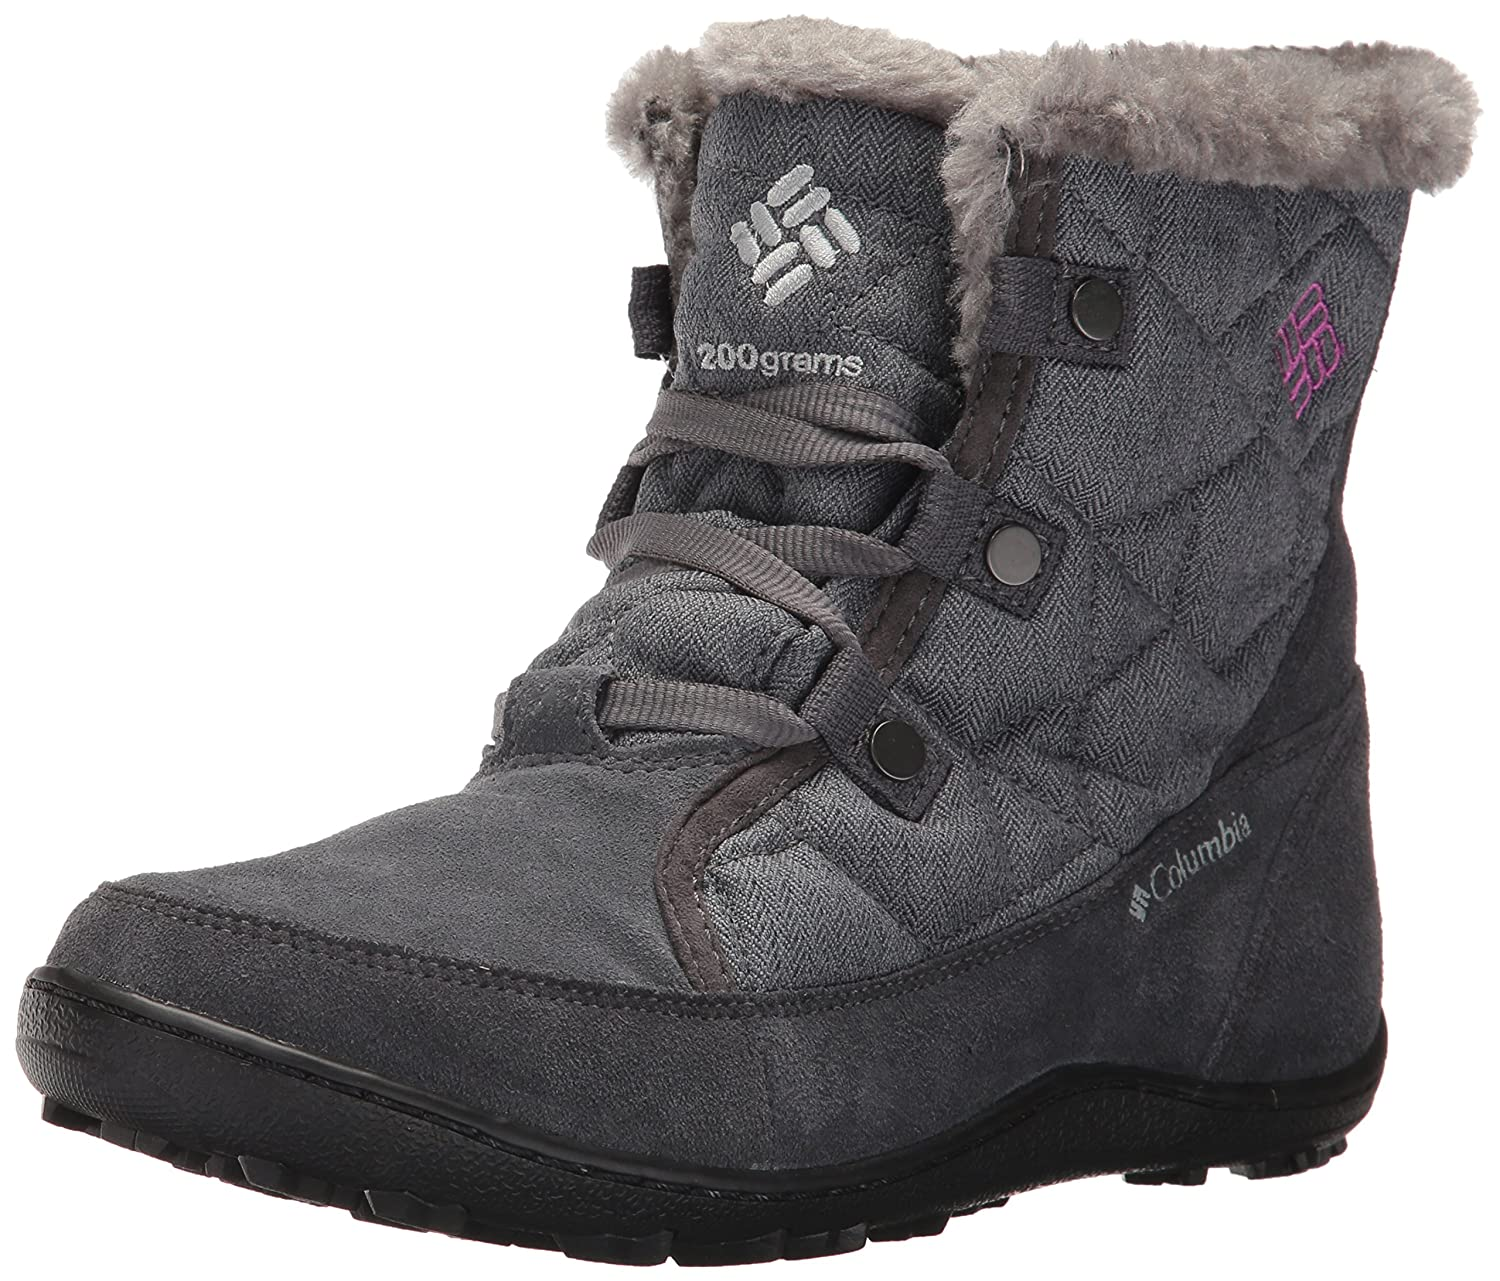 Columbia Women's Minx Shorty Alta Omni-Heat Snow Boot B01NCNF11V 7 B(M) US|Graphite, Intense Violet